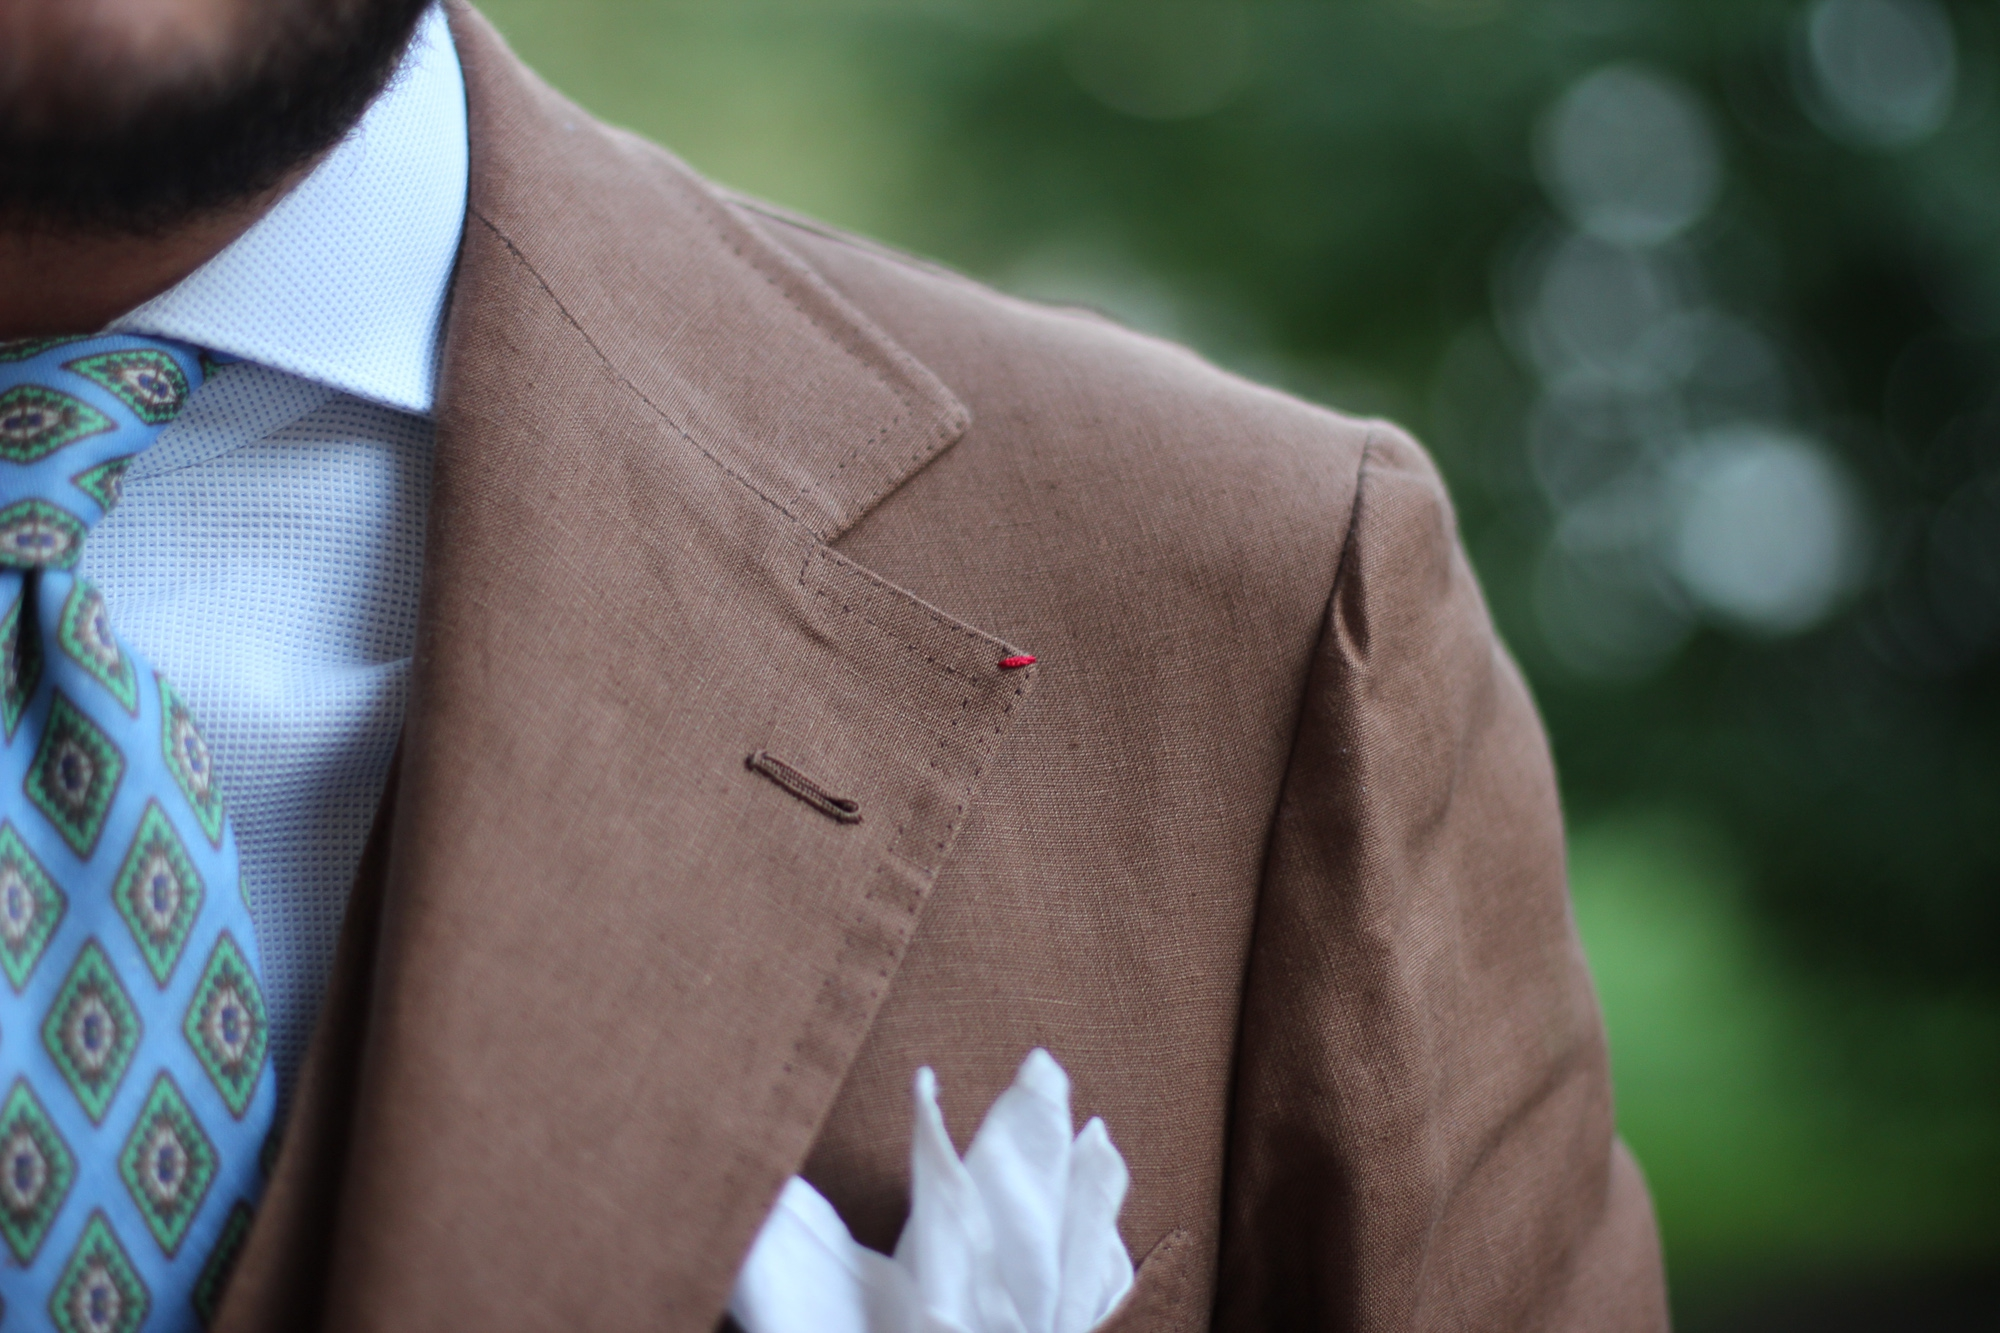 Dalcuore Three-piece Suit Tobacco coloured Will Bill Irish linen